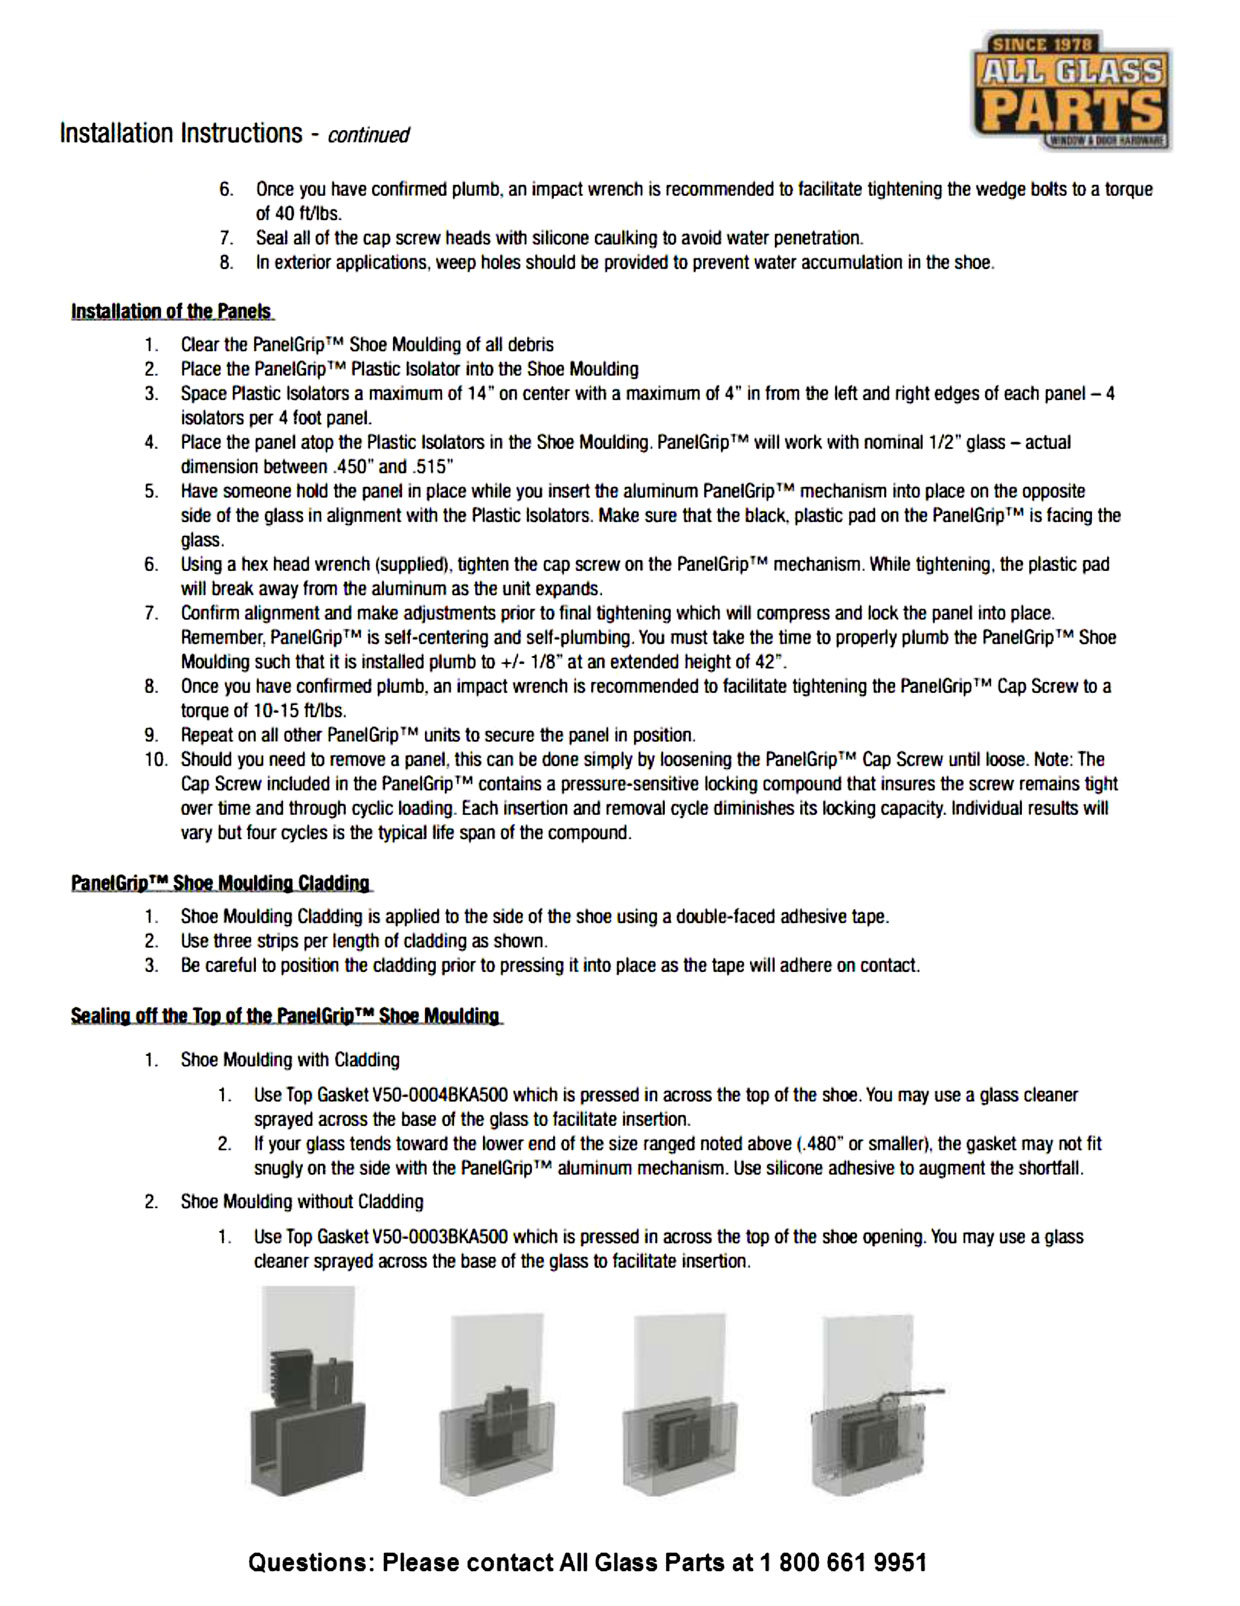 panelgrip-instructions-all-glass-parts-1-2.jpg